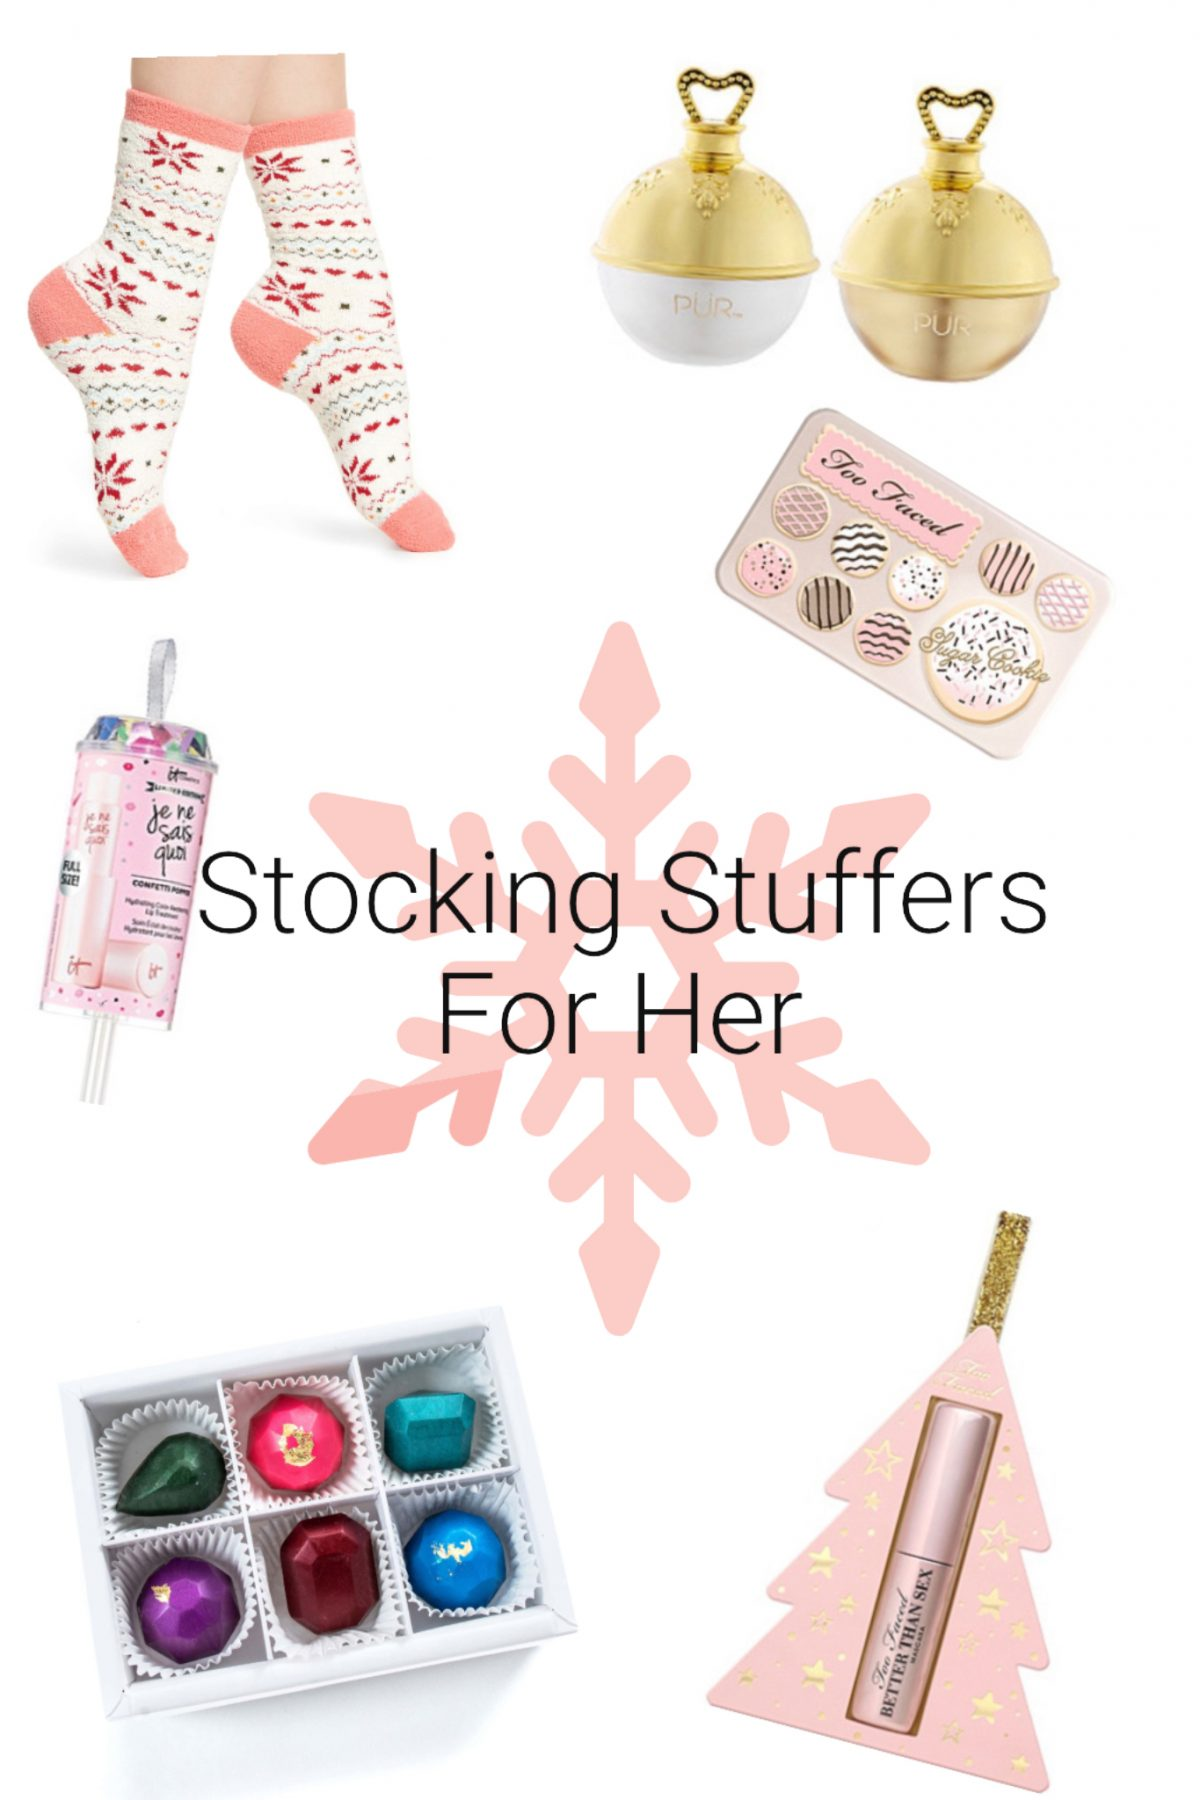 Stocking Stuffer Christmas Gift Ideas For Women | . Stocking Stuffers For All Women. Makeup, Skincare, chocolate, fuzzy socks, you name it!